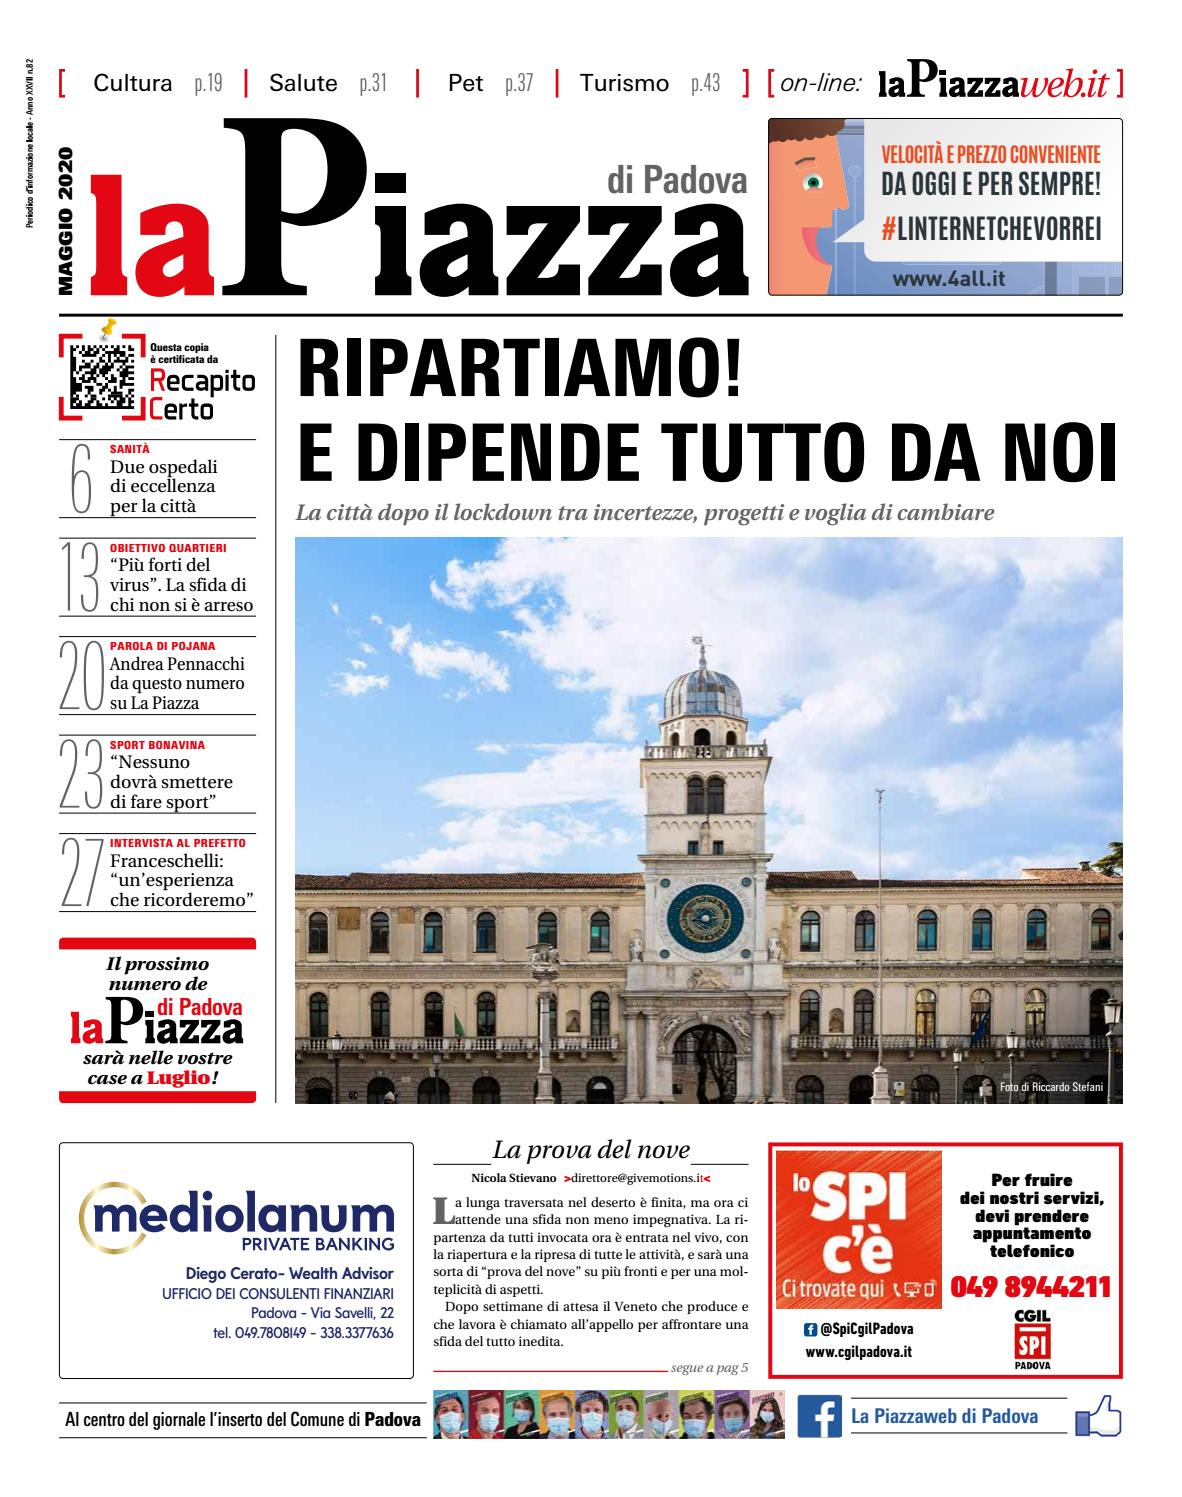 La Piazza Di Padova Mag2020 N82 By Lapiazza Give Emotions Issuu